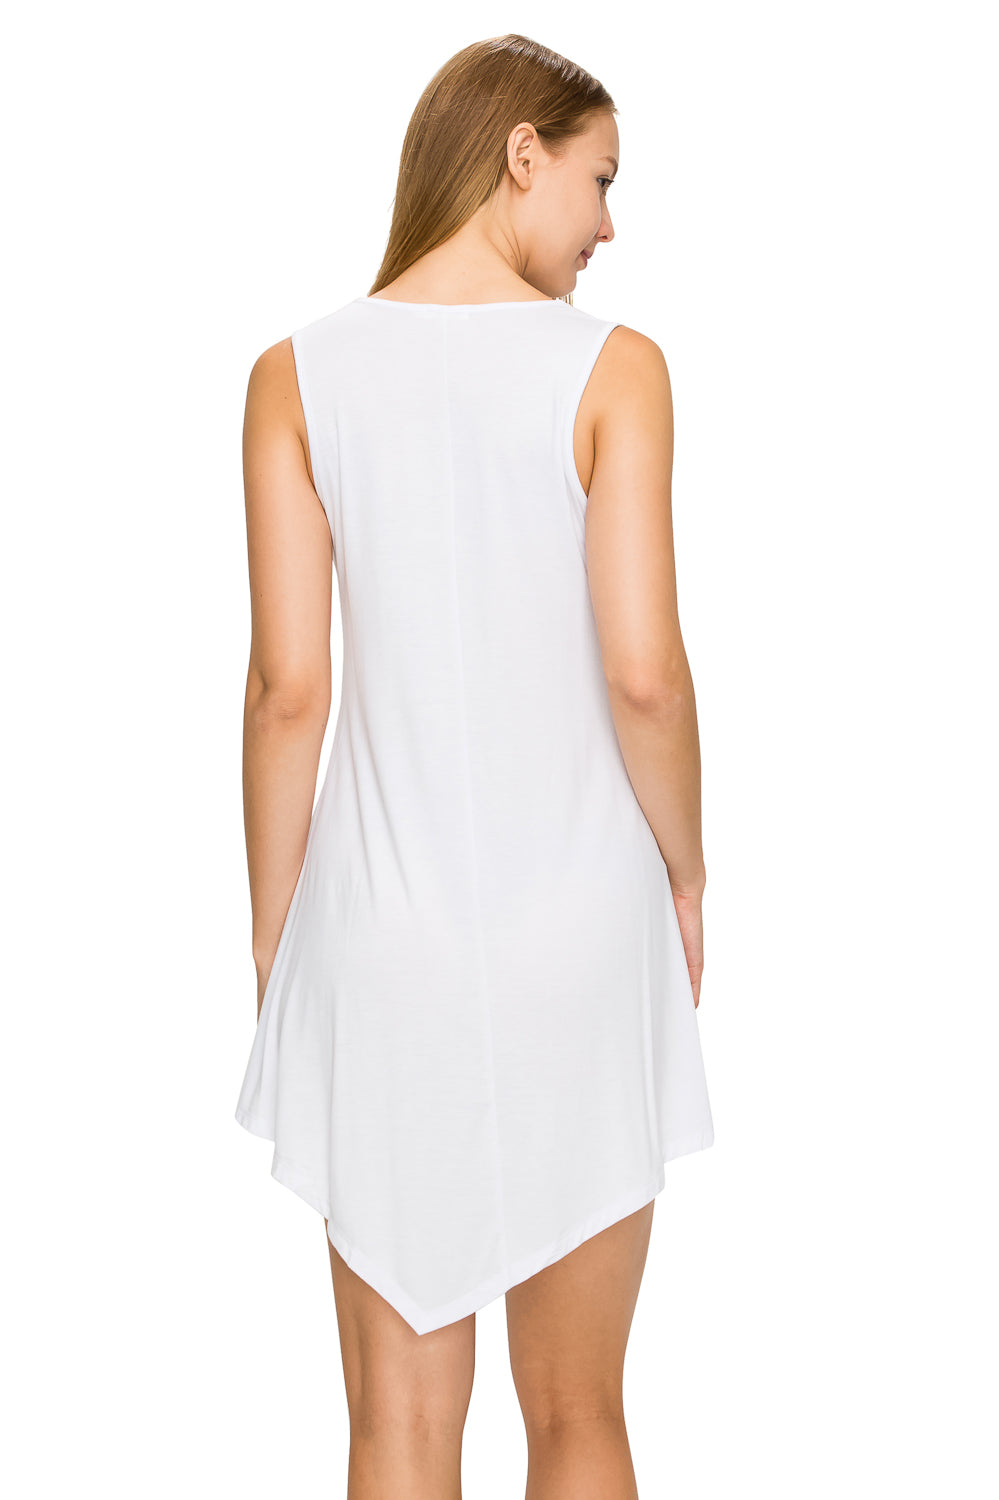 White Sleeveless Tank Tunic - Poplooks